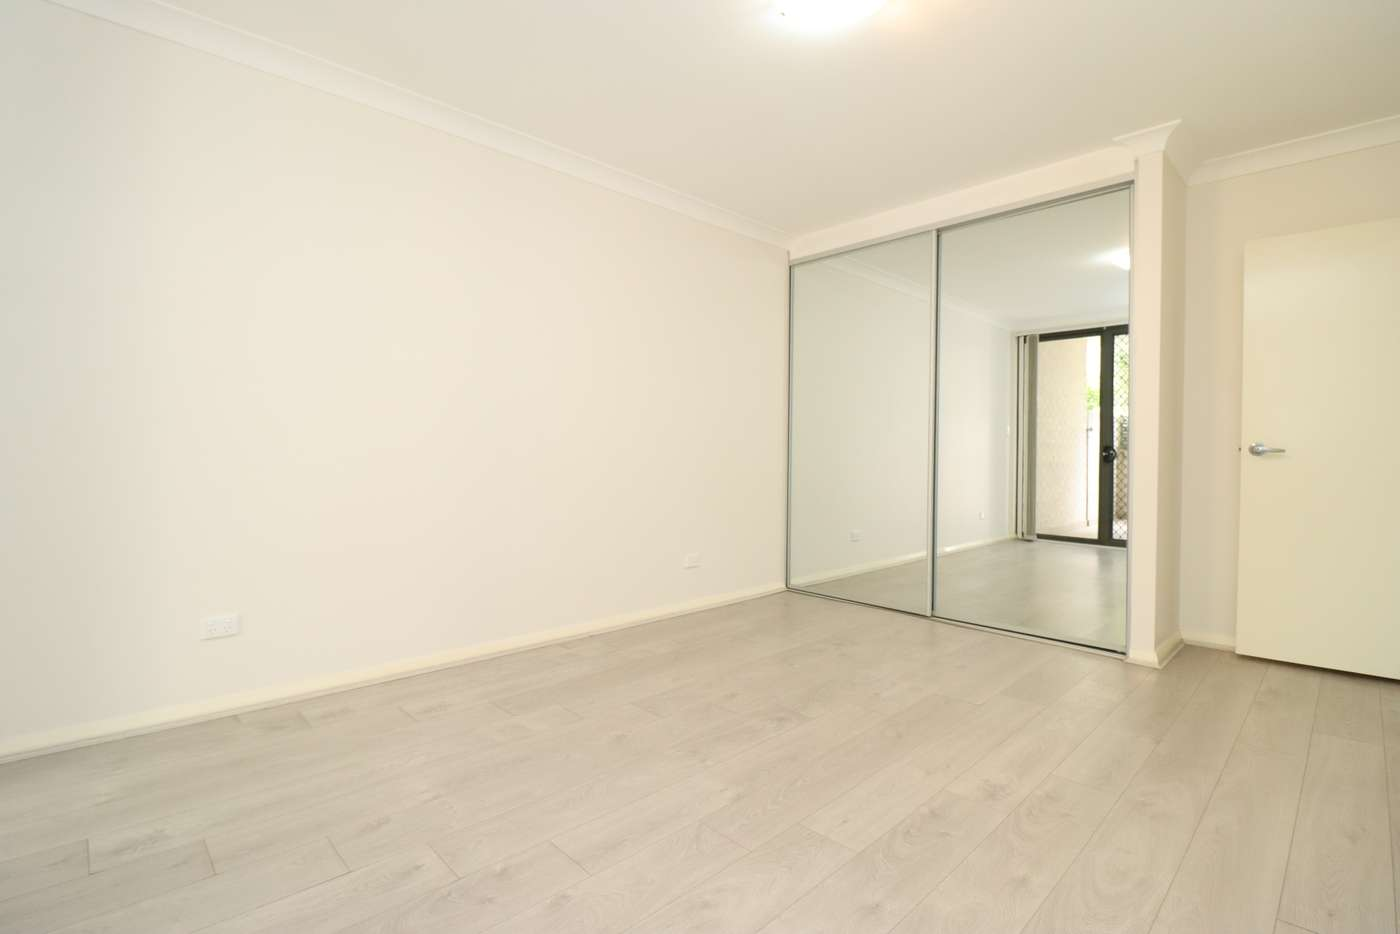 Sixth view of Homely apartment listing, 1/40 - 42 Keeler St, Carlingford NSW 2118